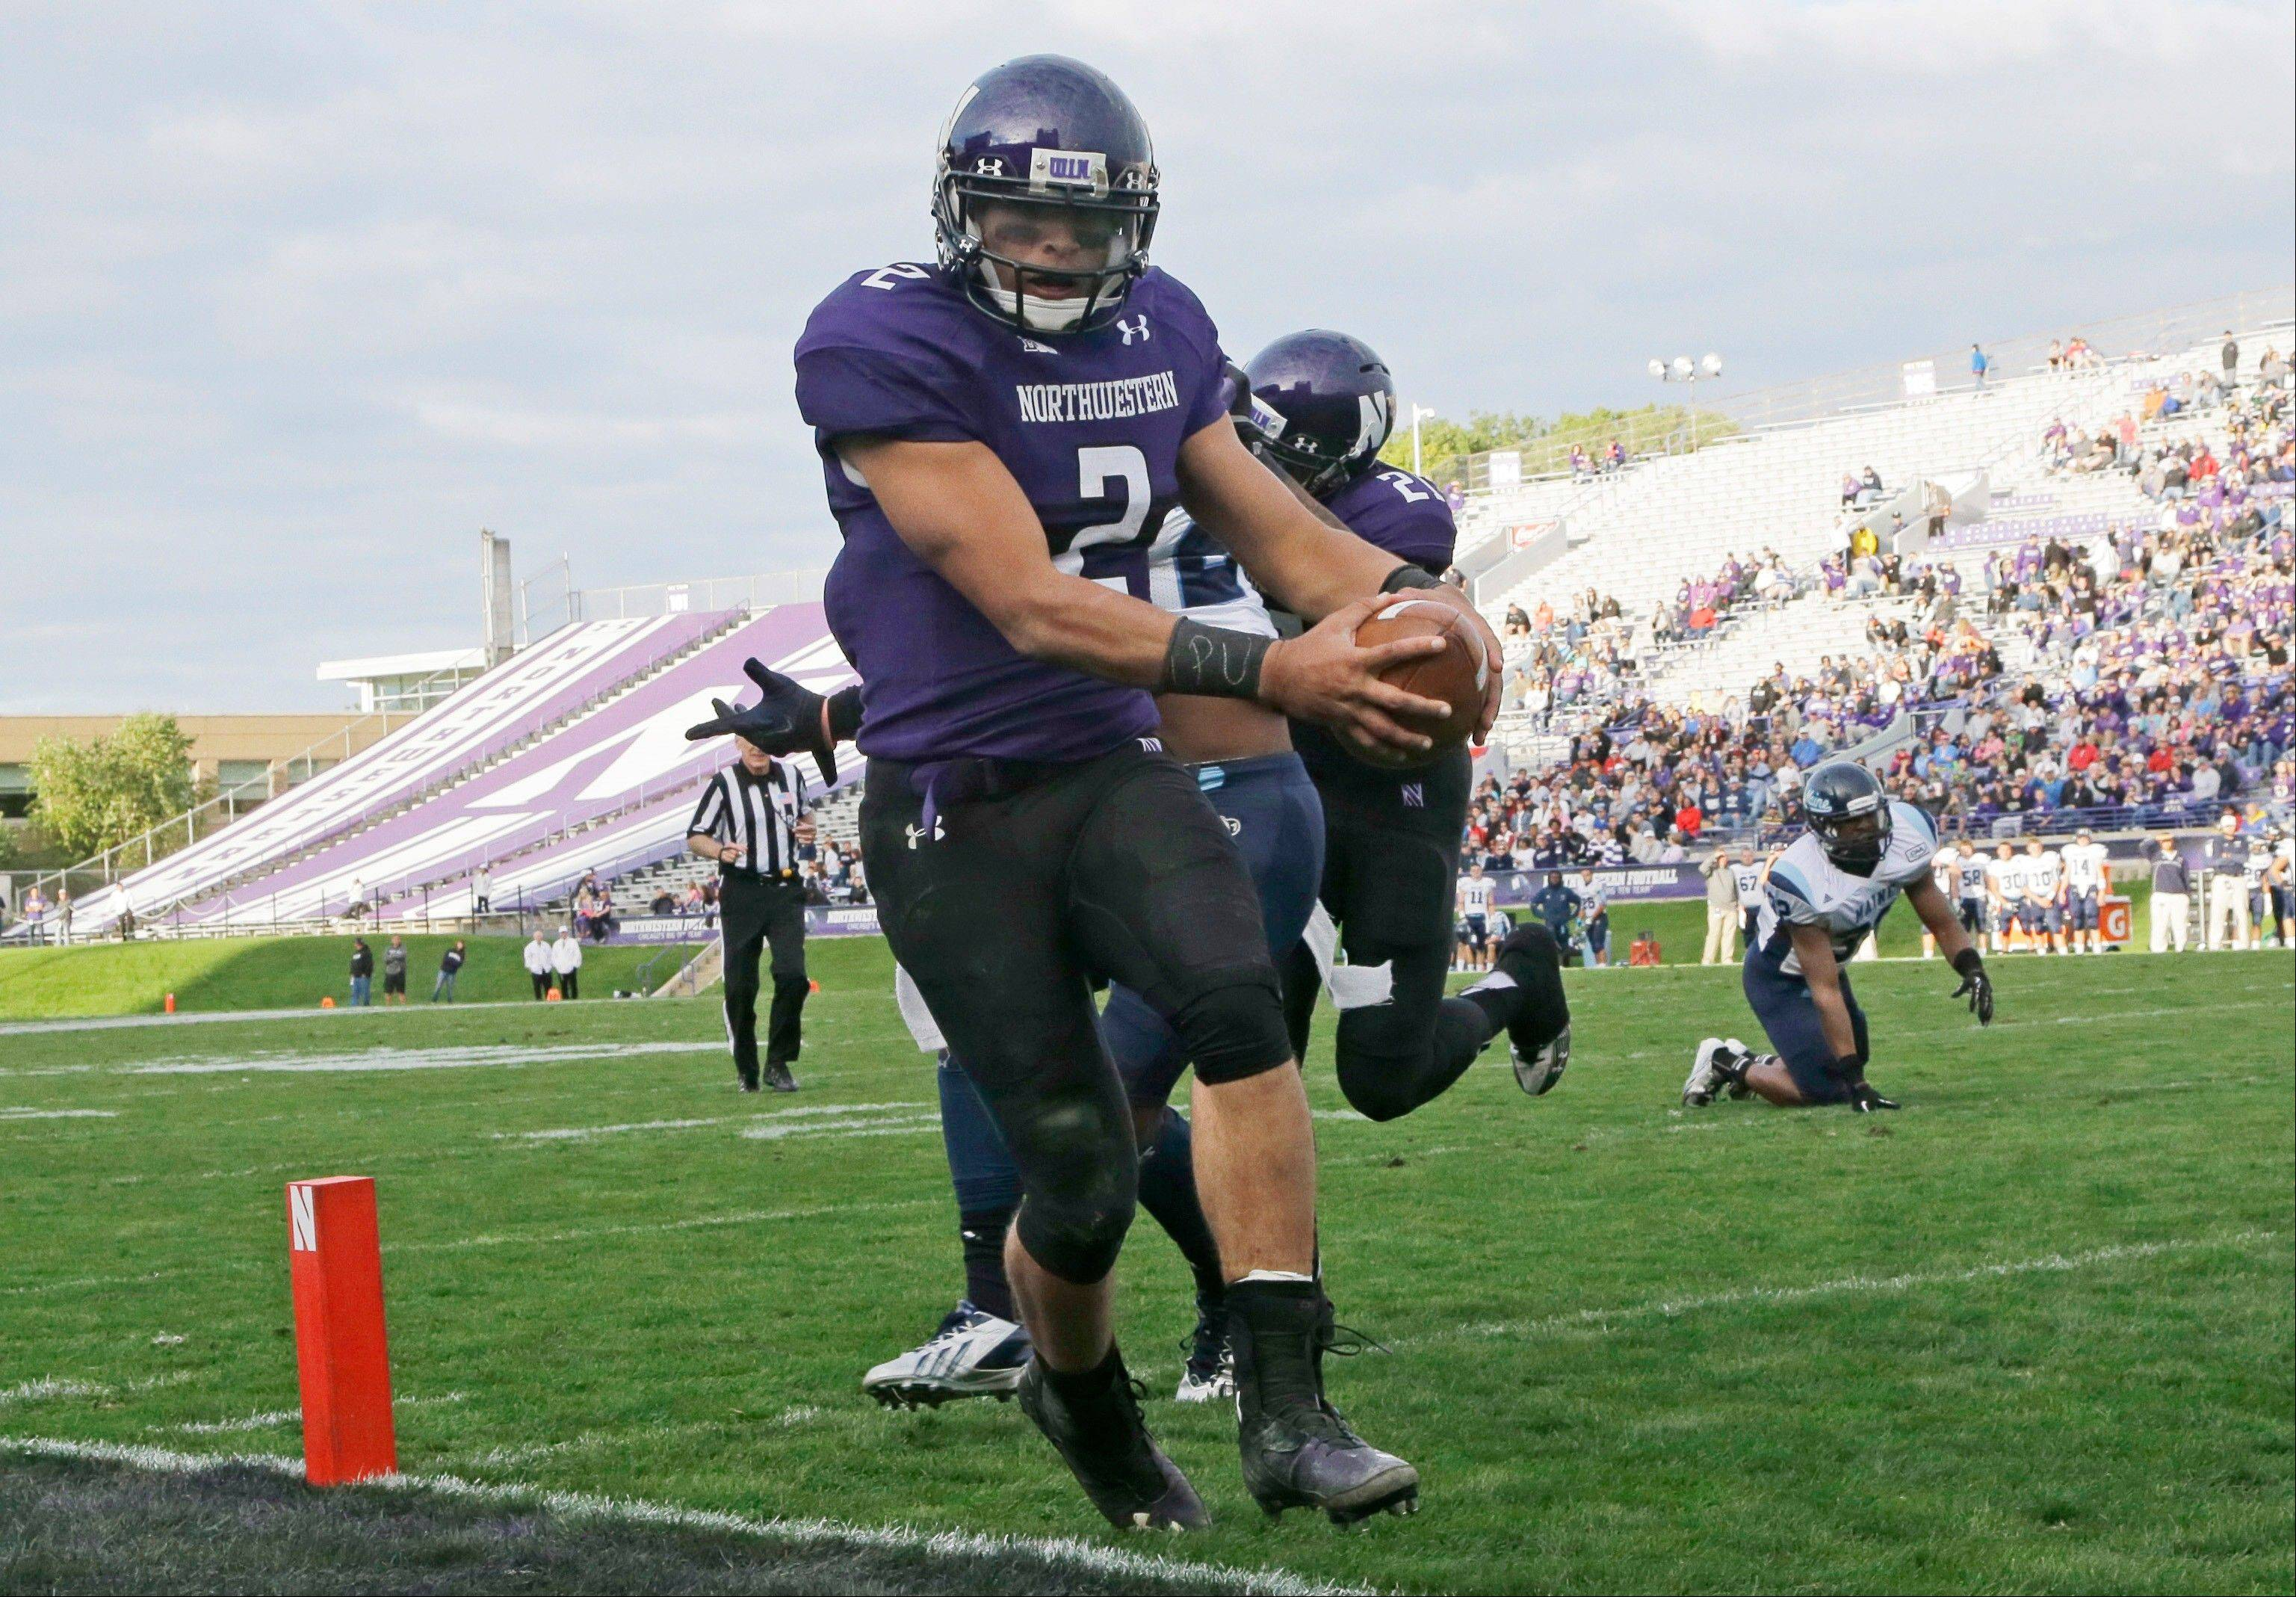 Northwestern quarterback Kain Colter scores a touchdown during the second half against Maine on Saturday in Evanston.